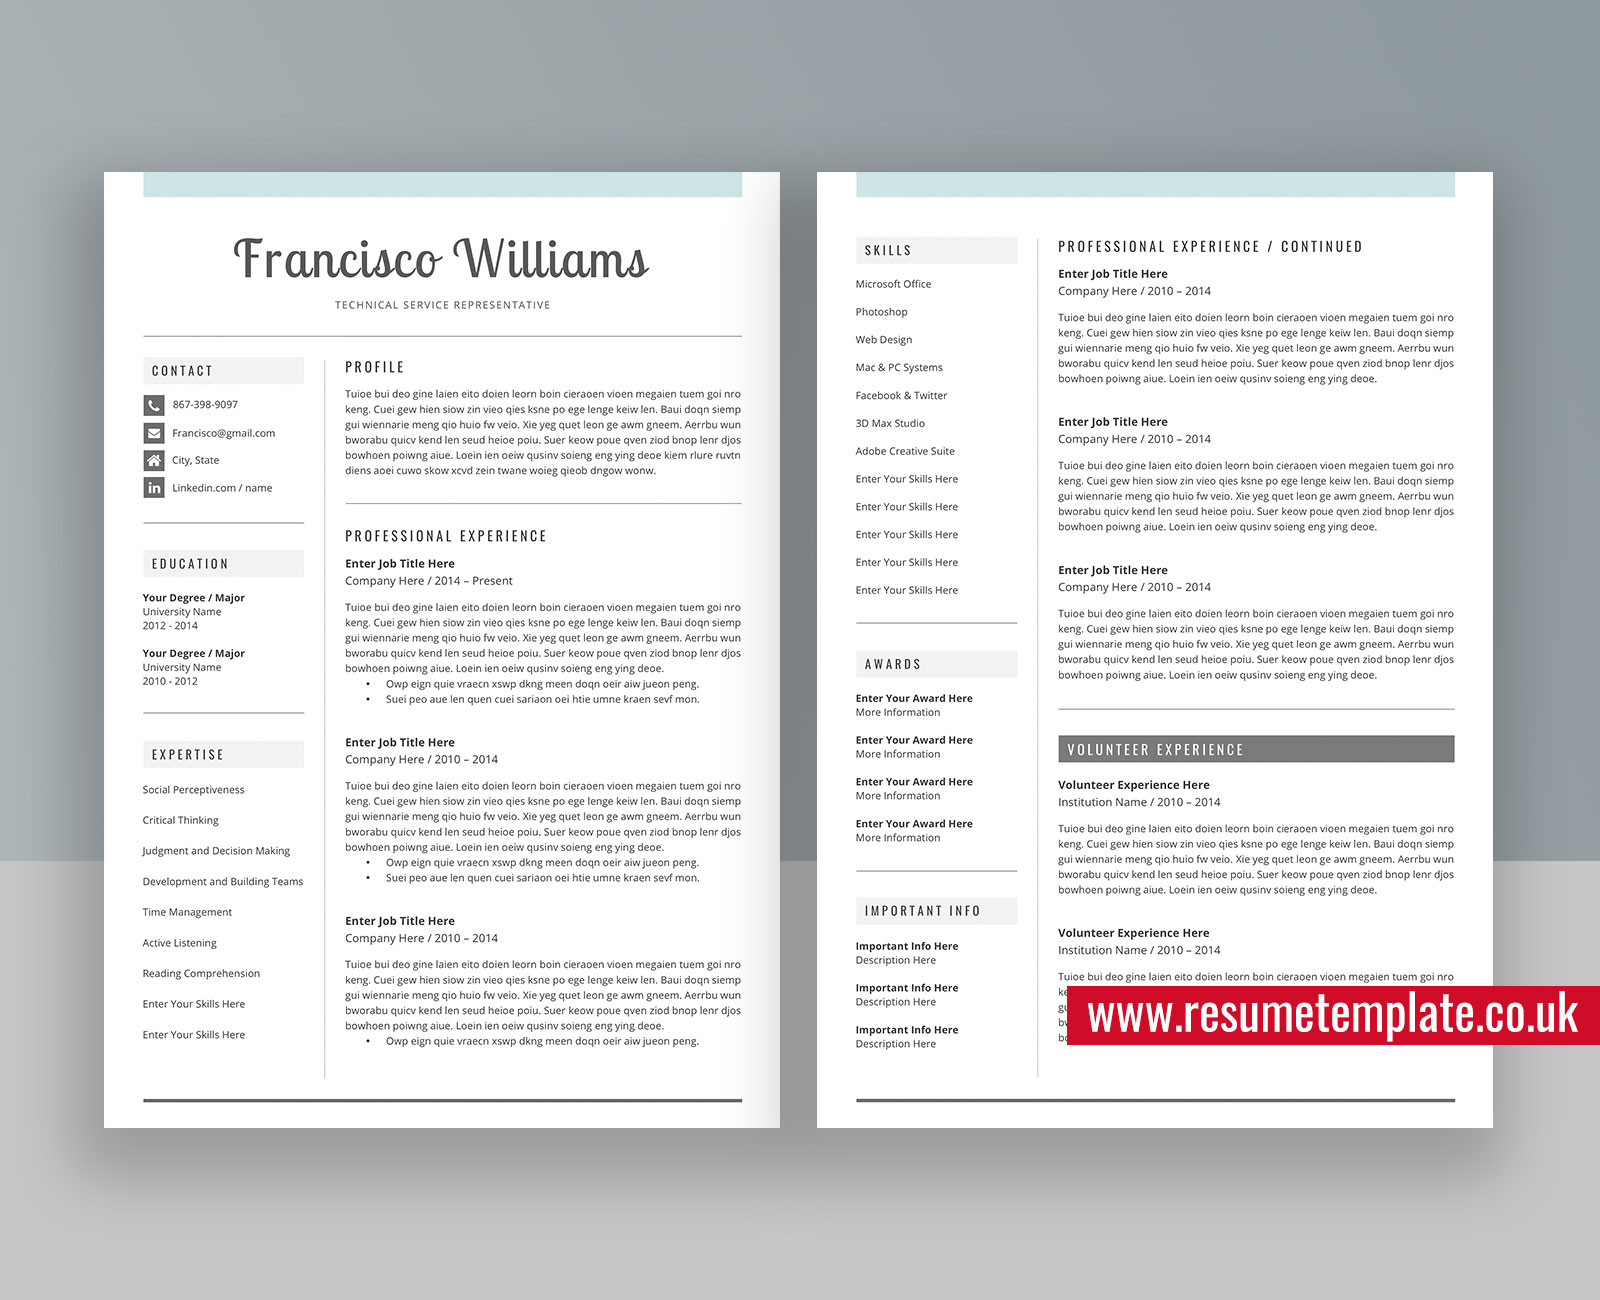 Modern Cv Template For Ms Word Simple Resume Fully Editable Resume 1 3 Page Resume Cover Letter And References For Digital Instant Download Francisco Resume Resumetemplate Co Uk